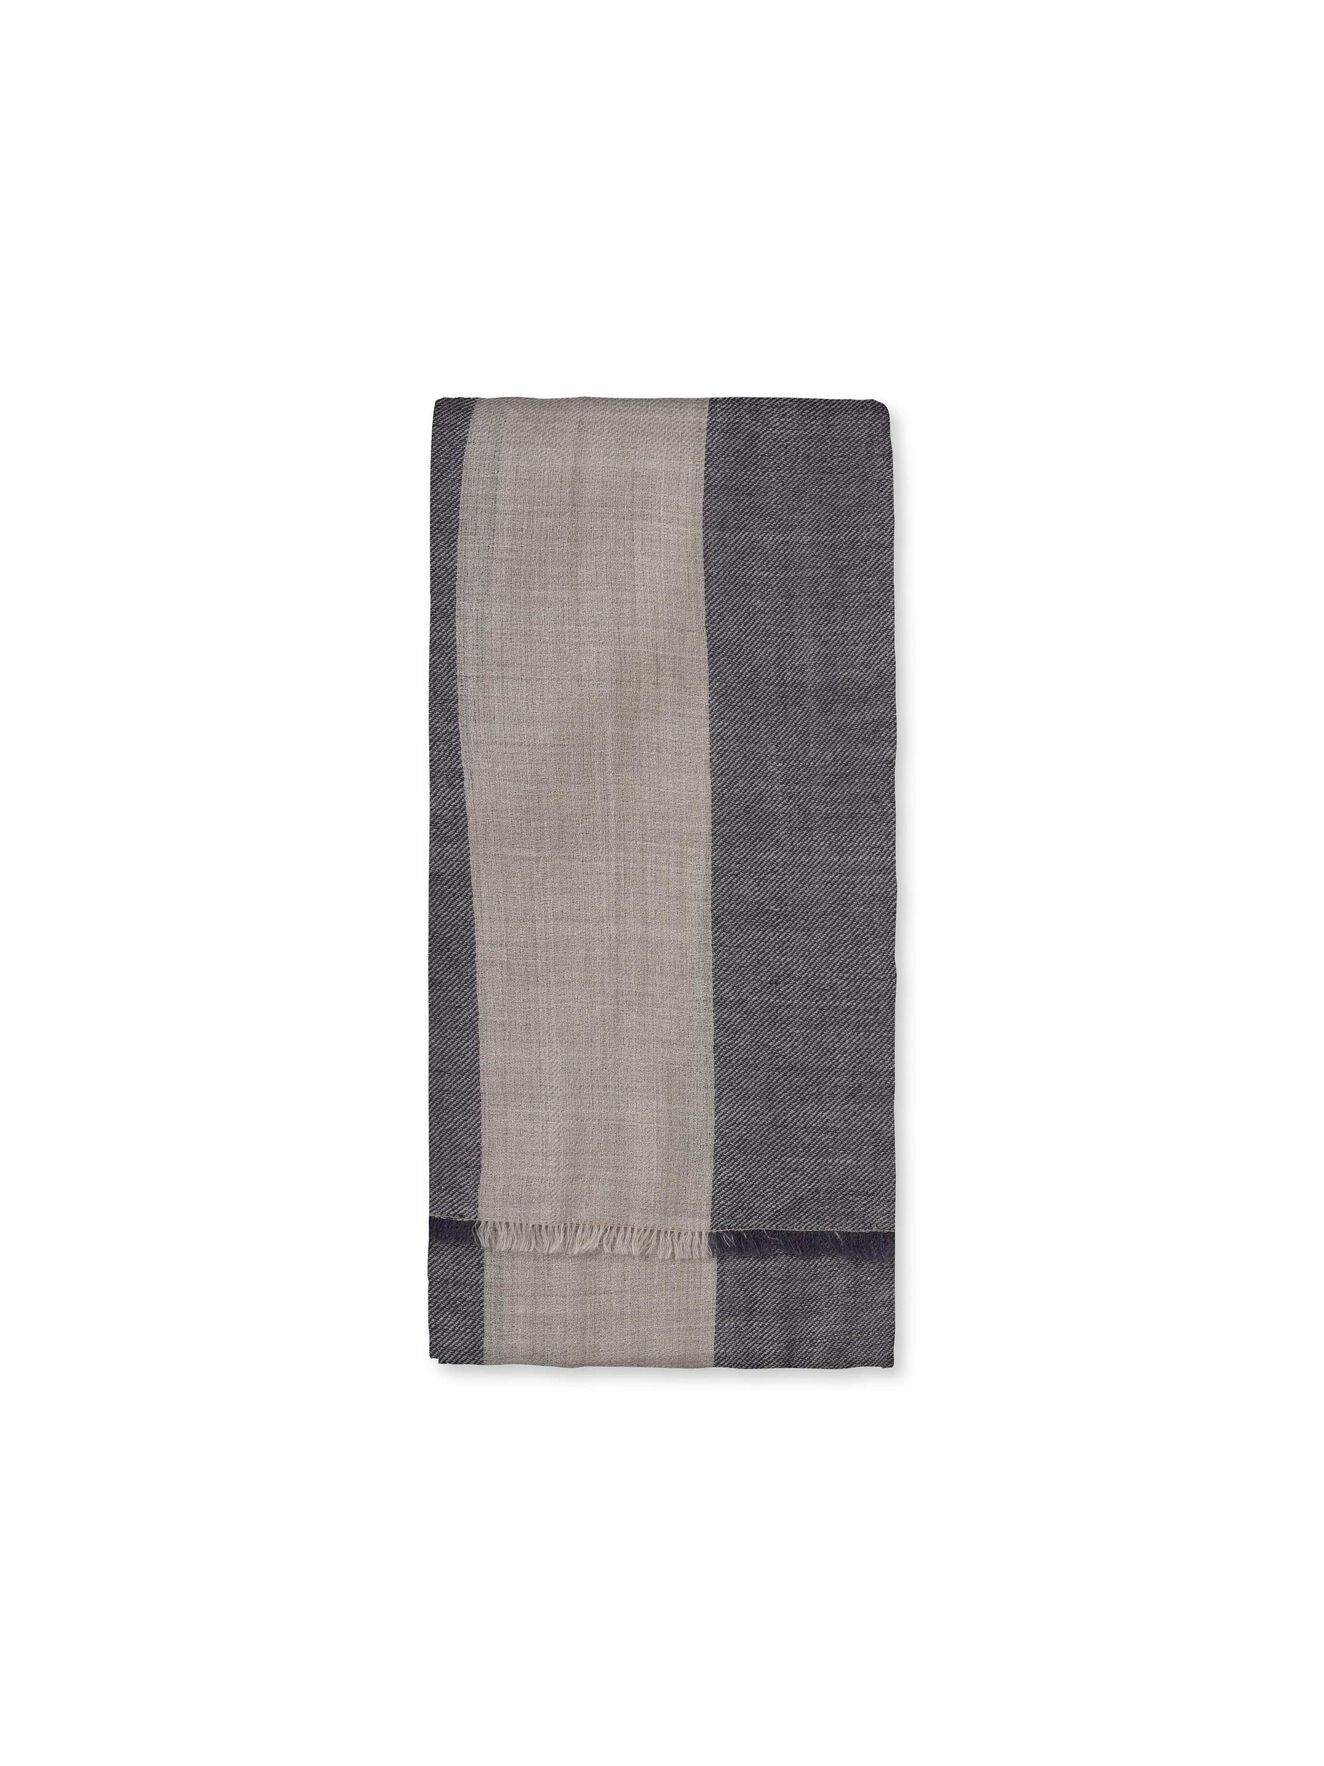 Emin Scarf in Fall Concrete from Tiger of Sweden